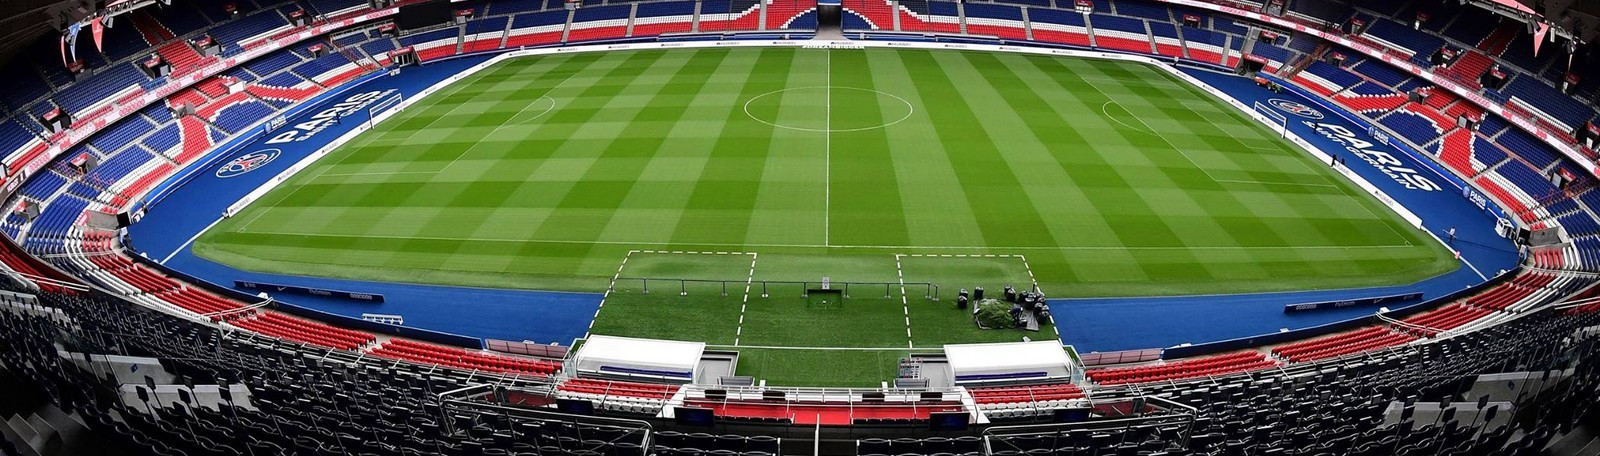 Le parc des princes shows boulogne billancourt - Parc des princes porte de saint cloud ...